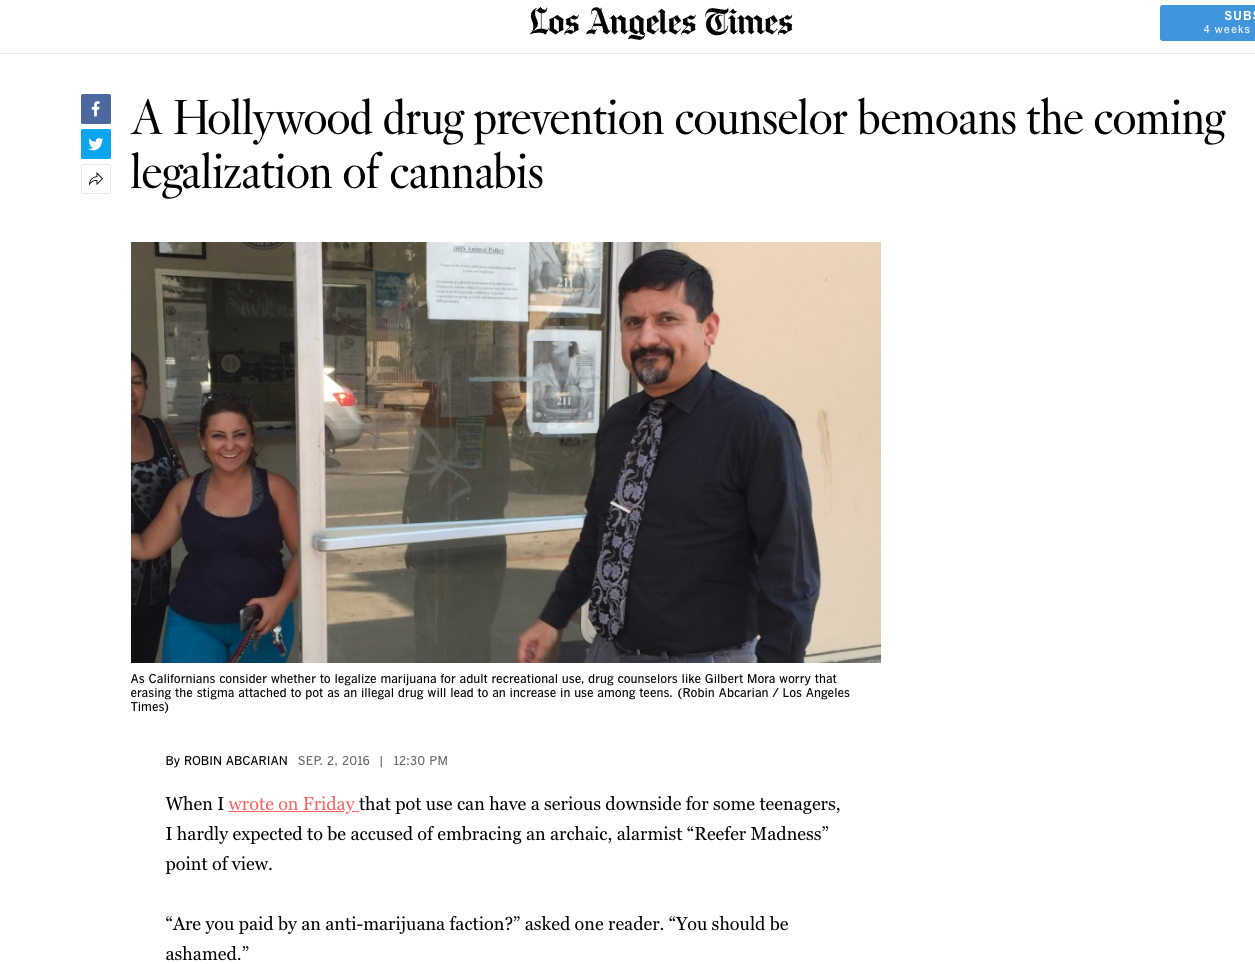 LA Times Article: A Hollywood drug prevention counselor bemoans the coming legalization of cannabis